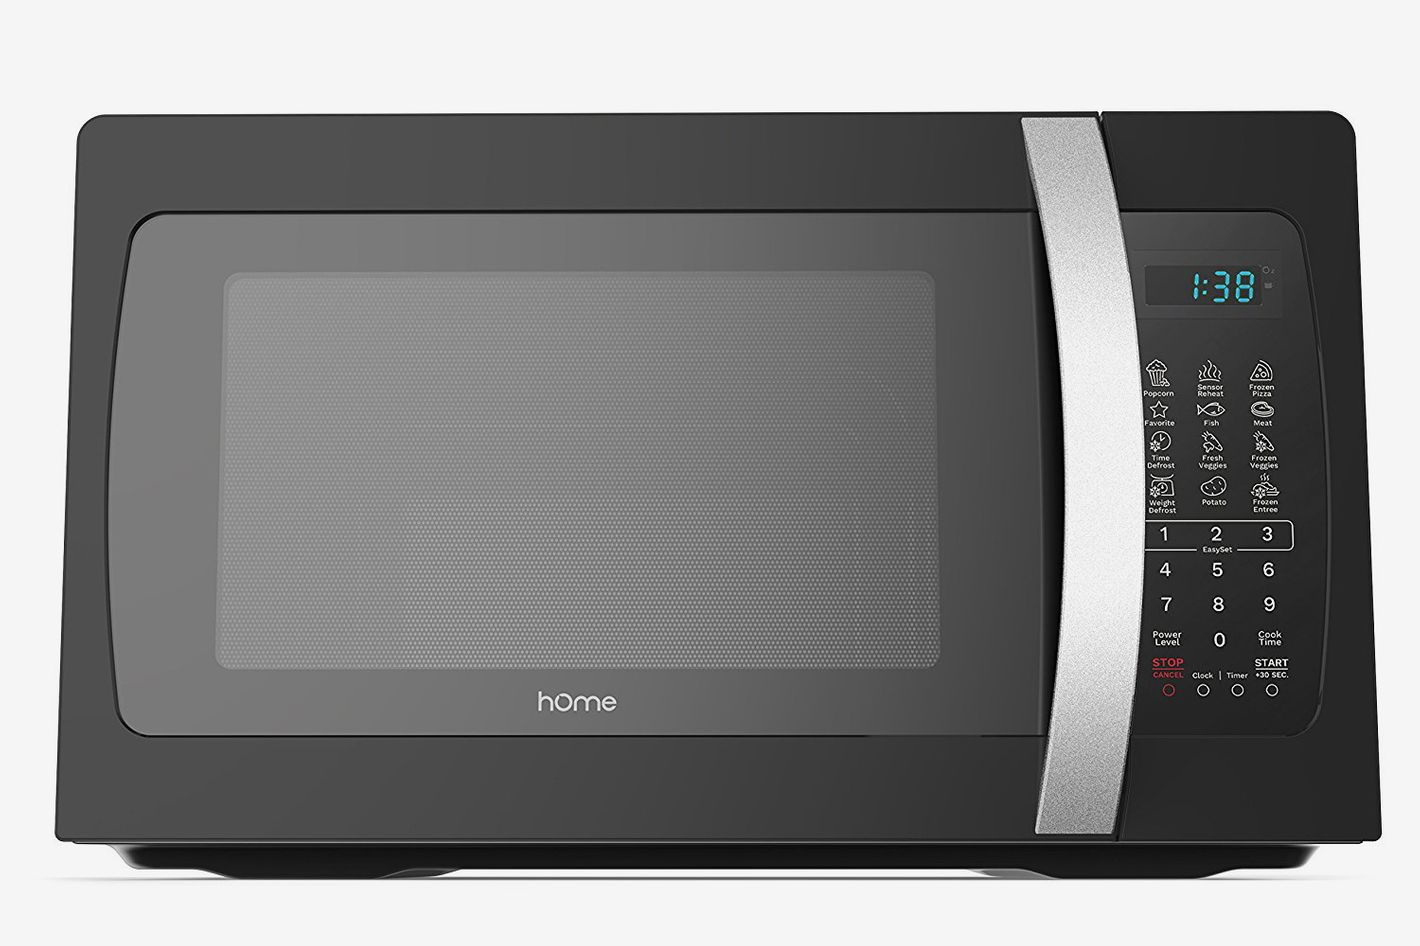 Homelabs 1050 Watt Countertop Microwave Oven With Accessories